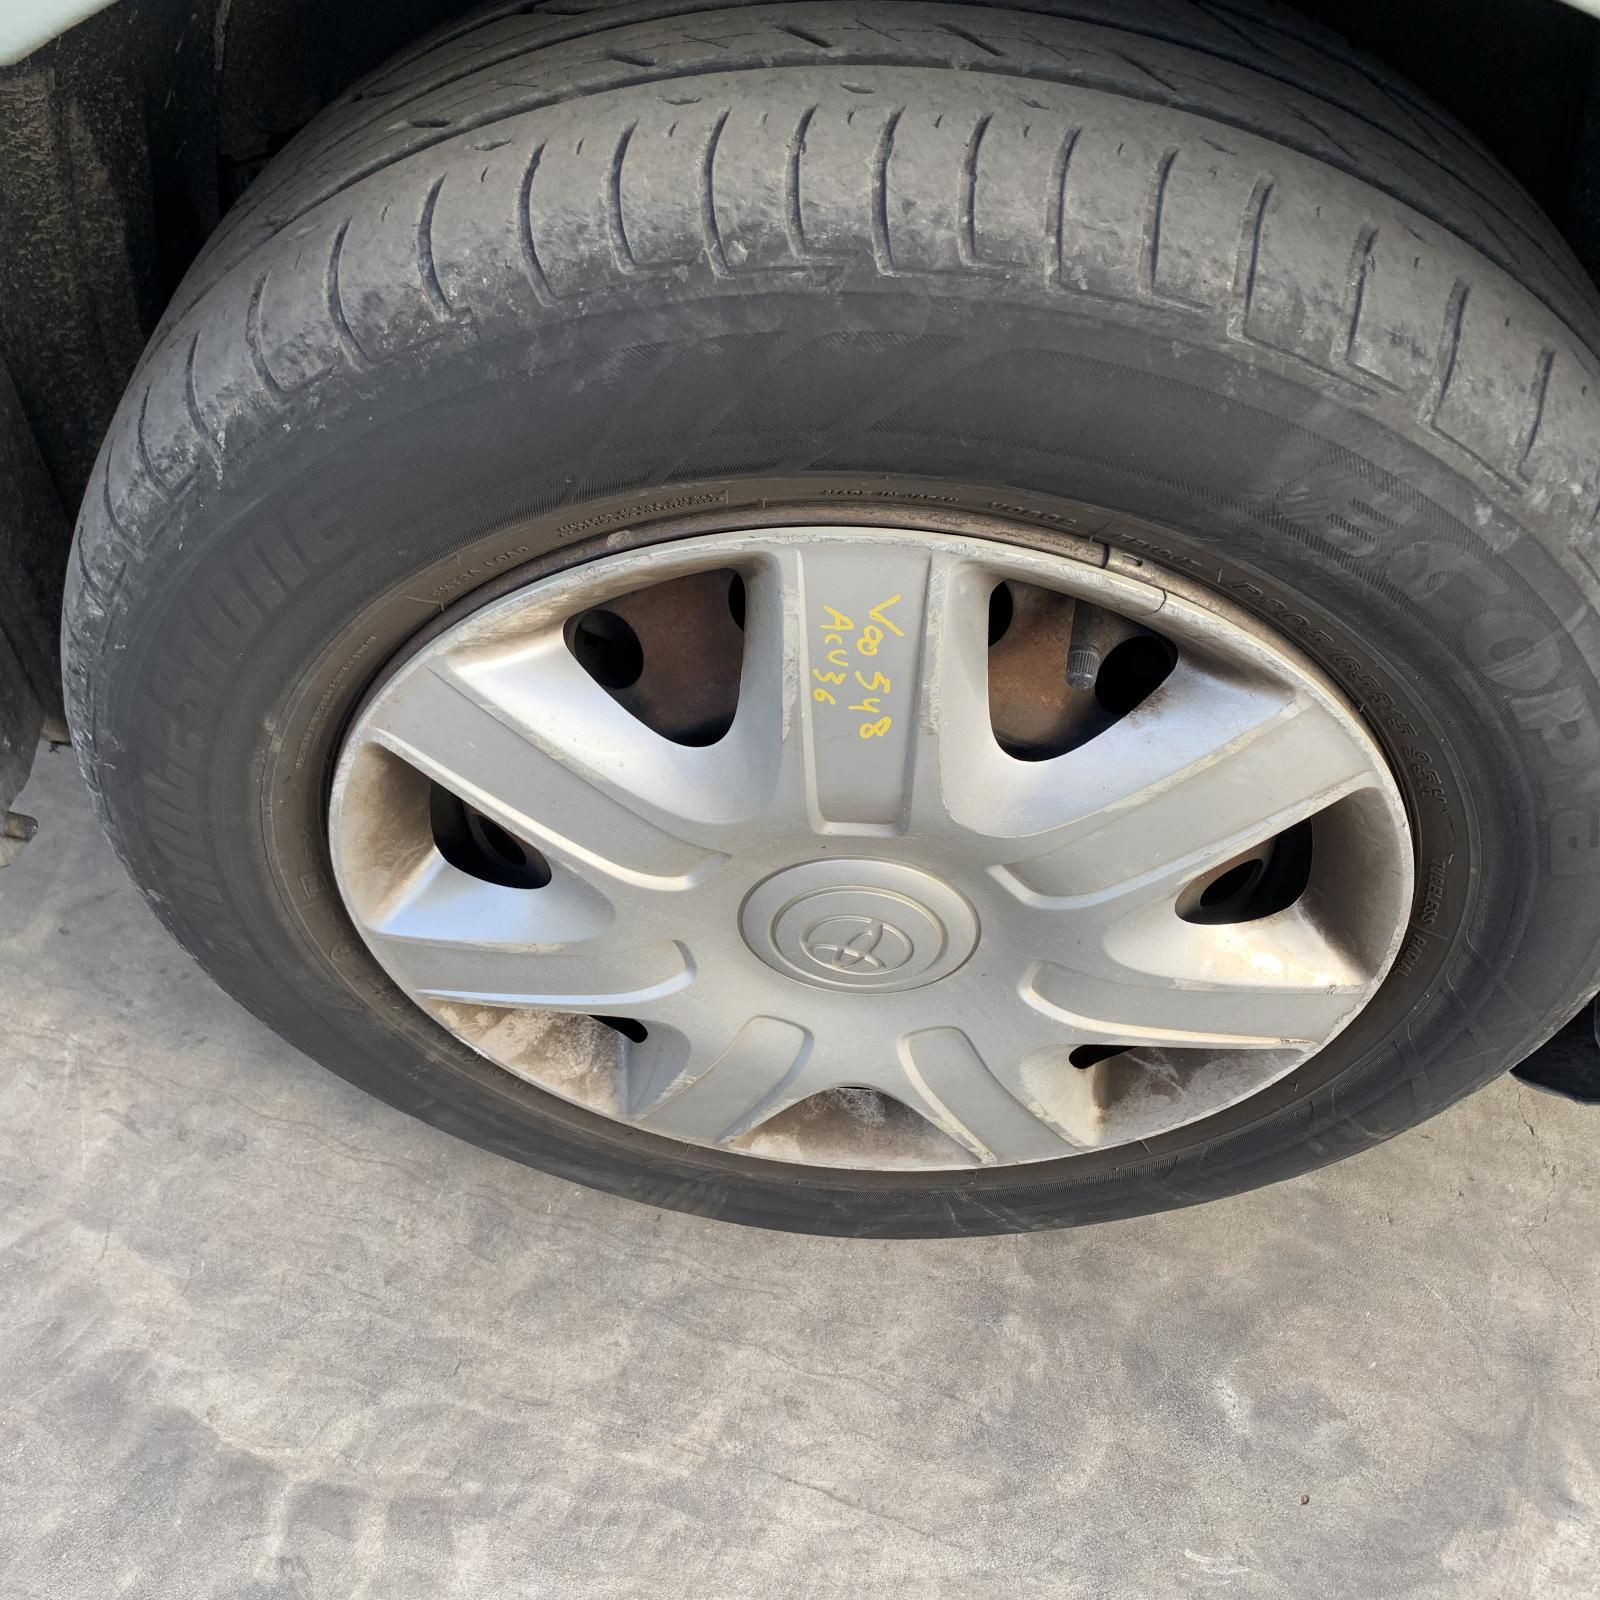 TOYOTA CAMRY, Wheel Cover/Hub Cap, SK36 10/02-06/06